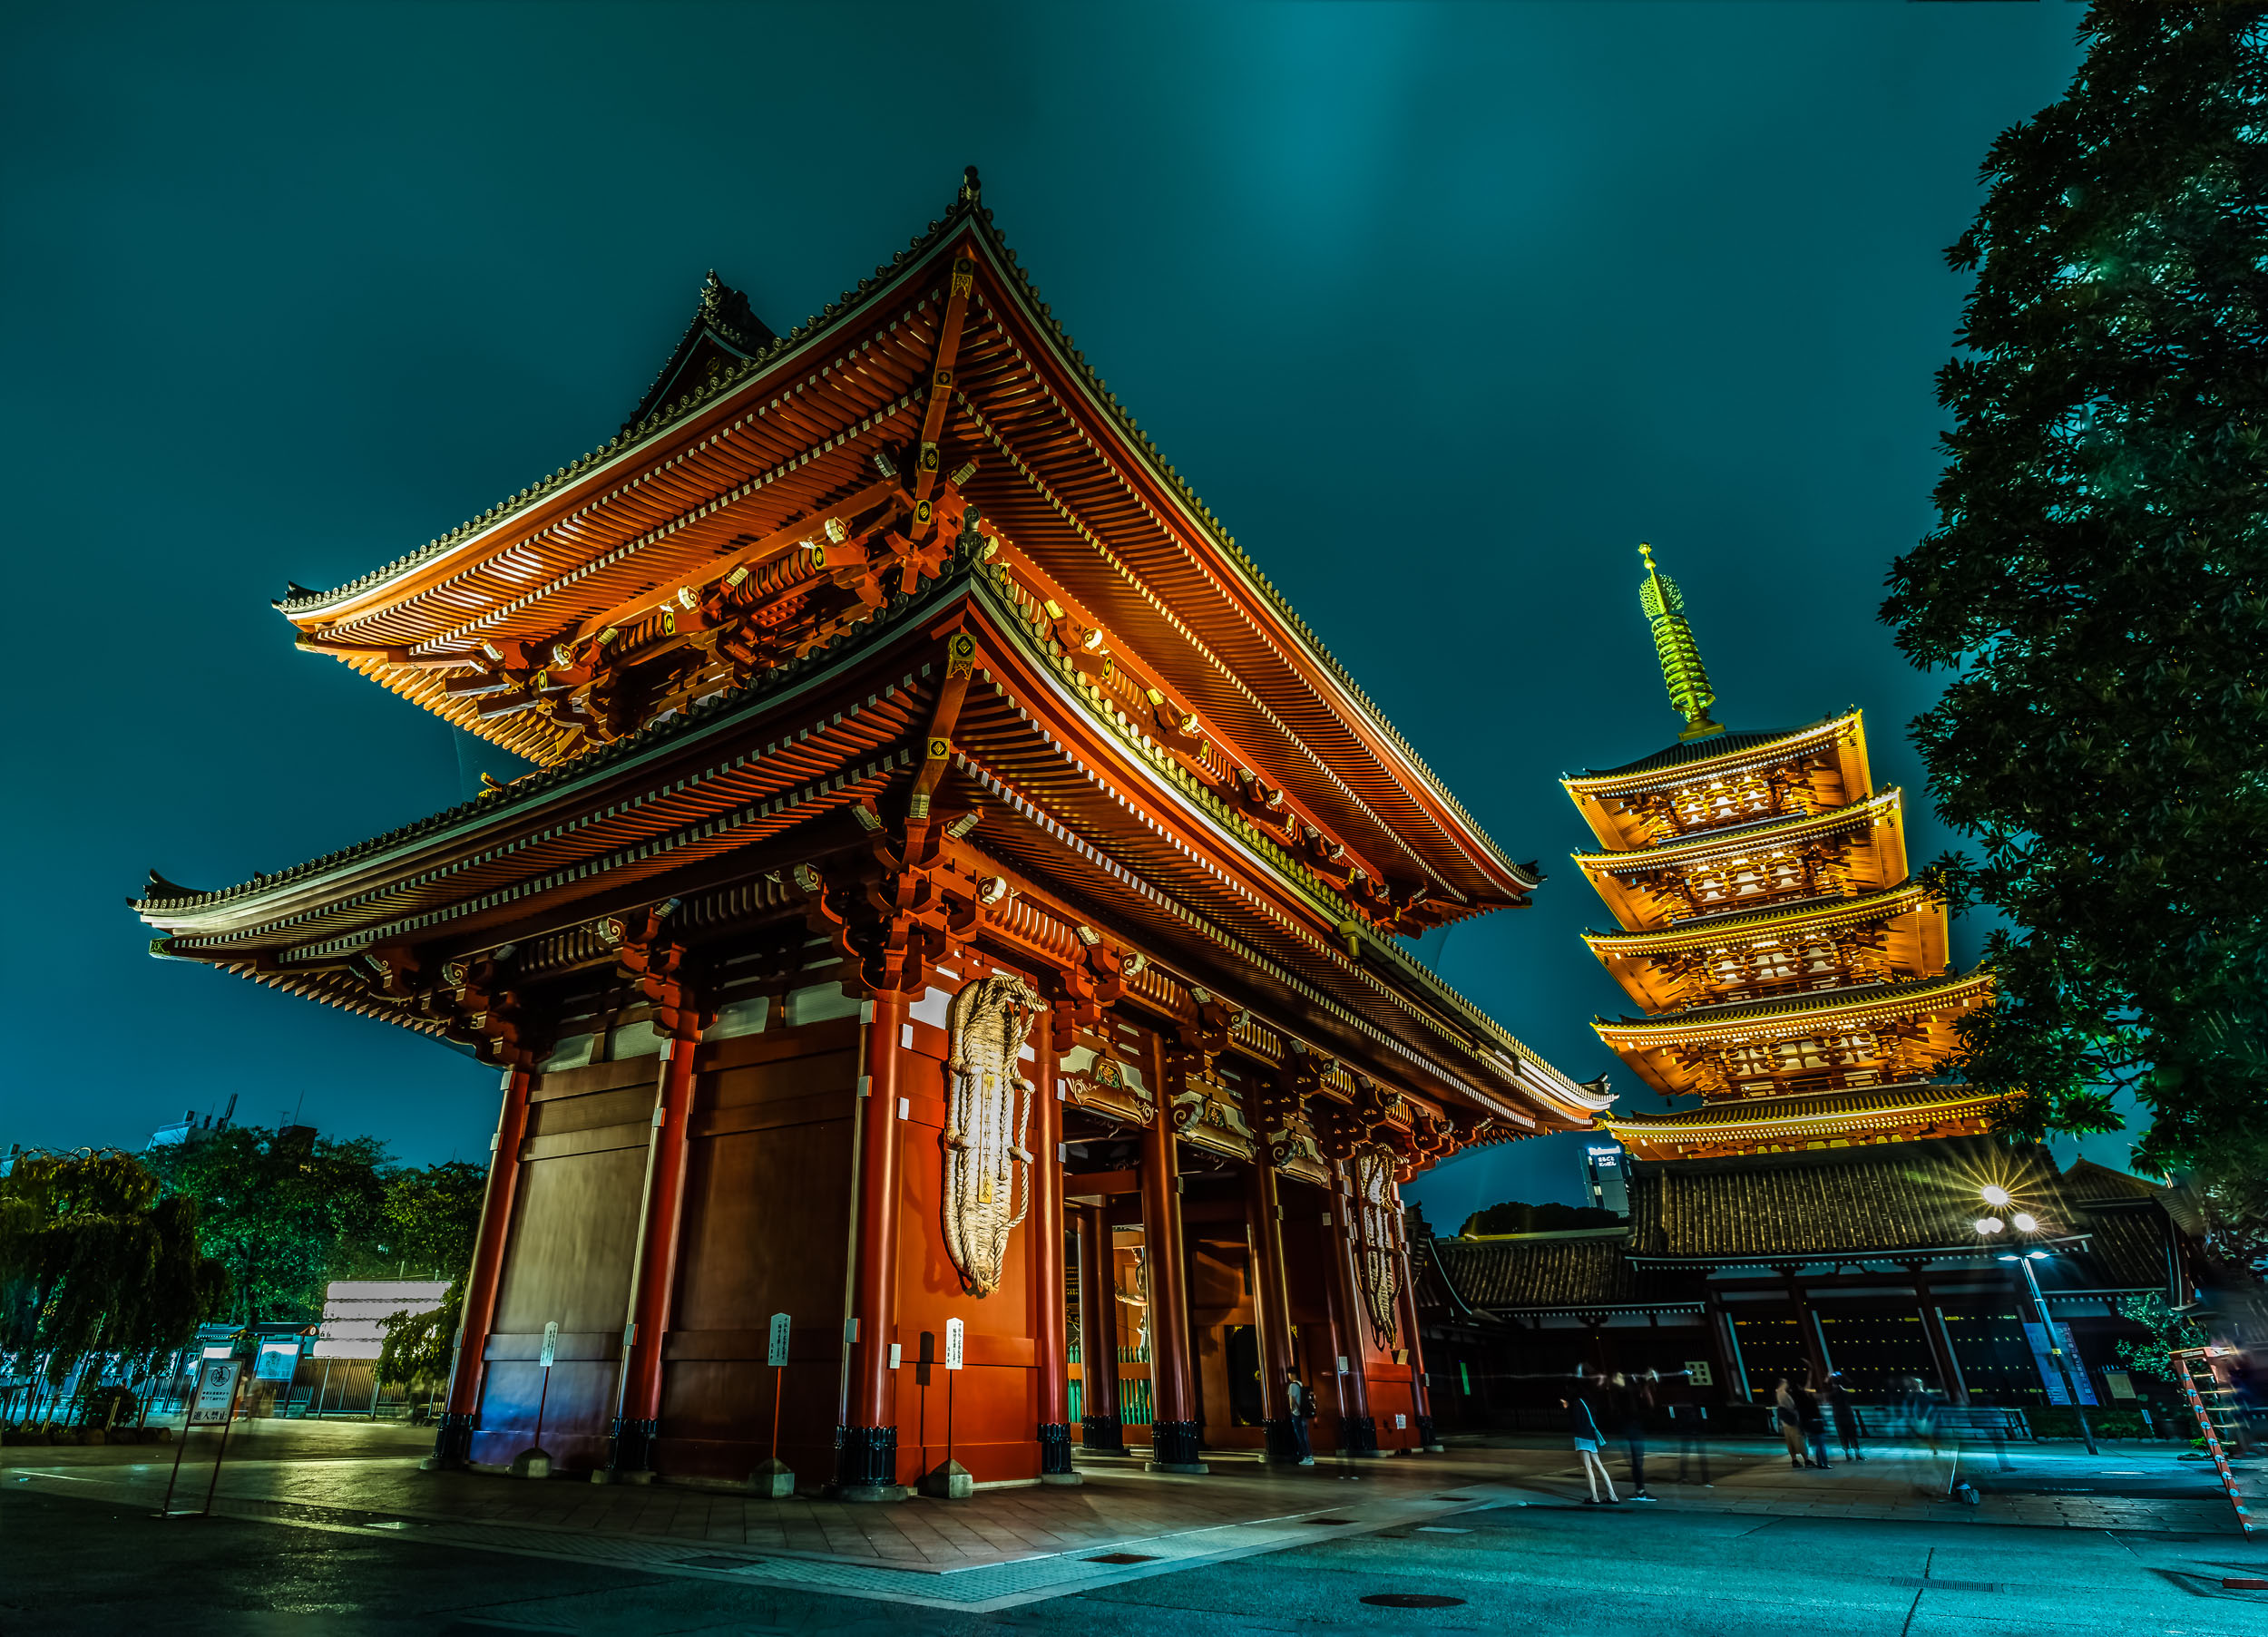 The Hozo gate and pagoda behind - this is a 4 shot panorama